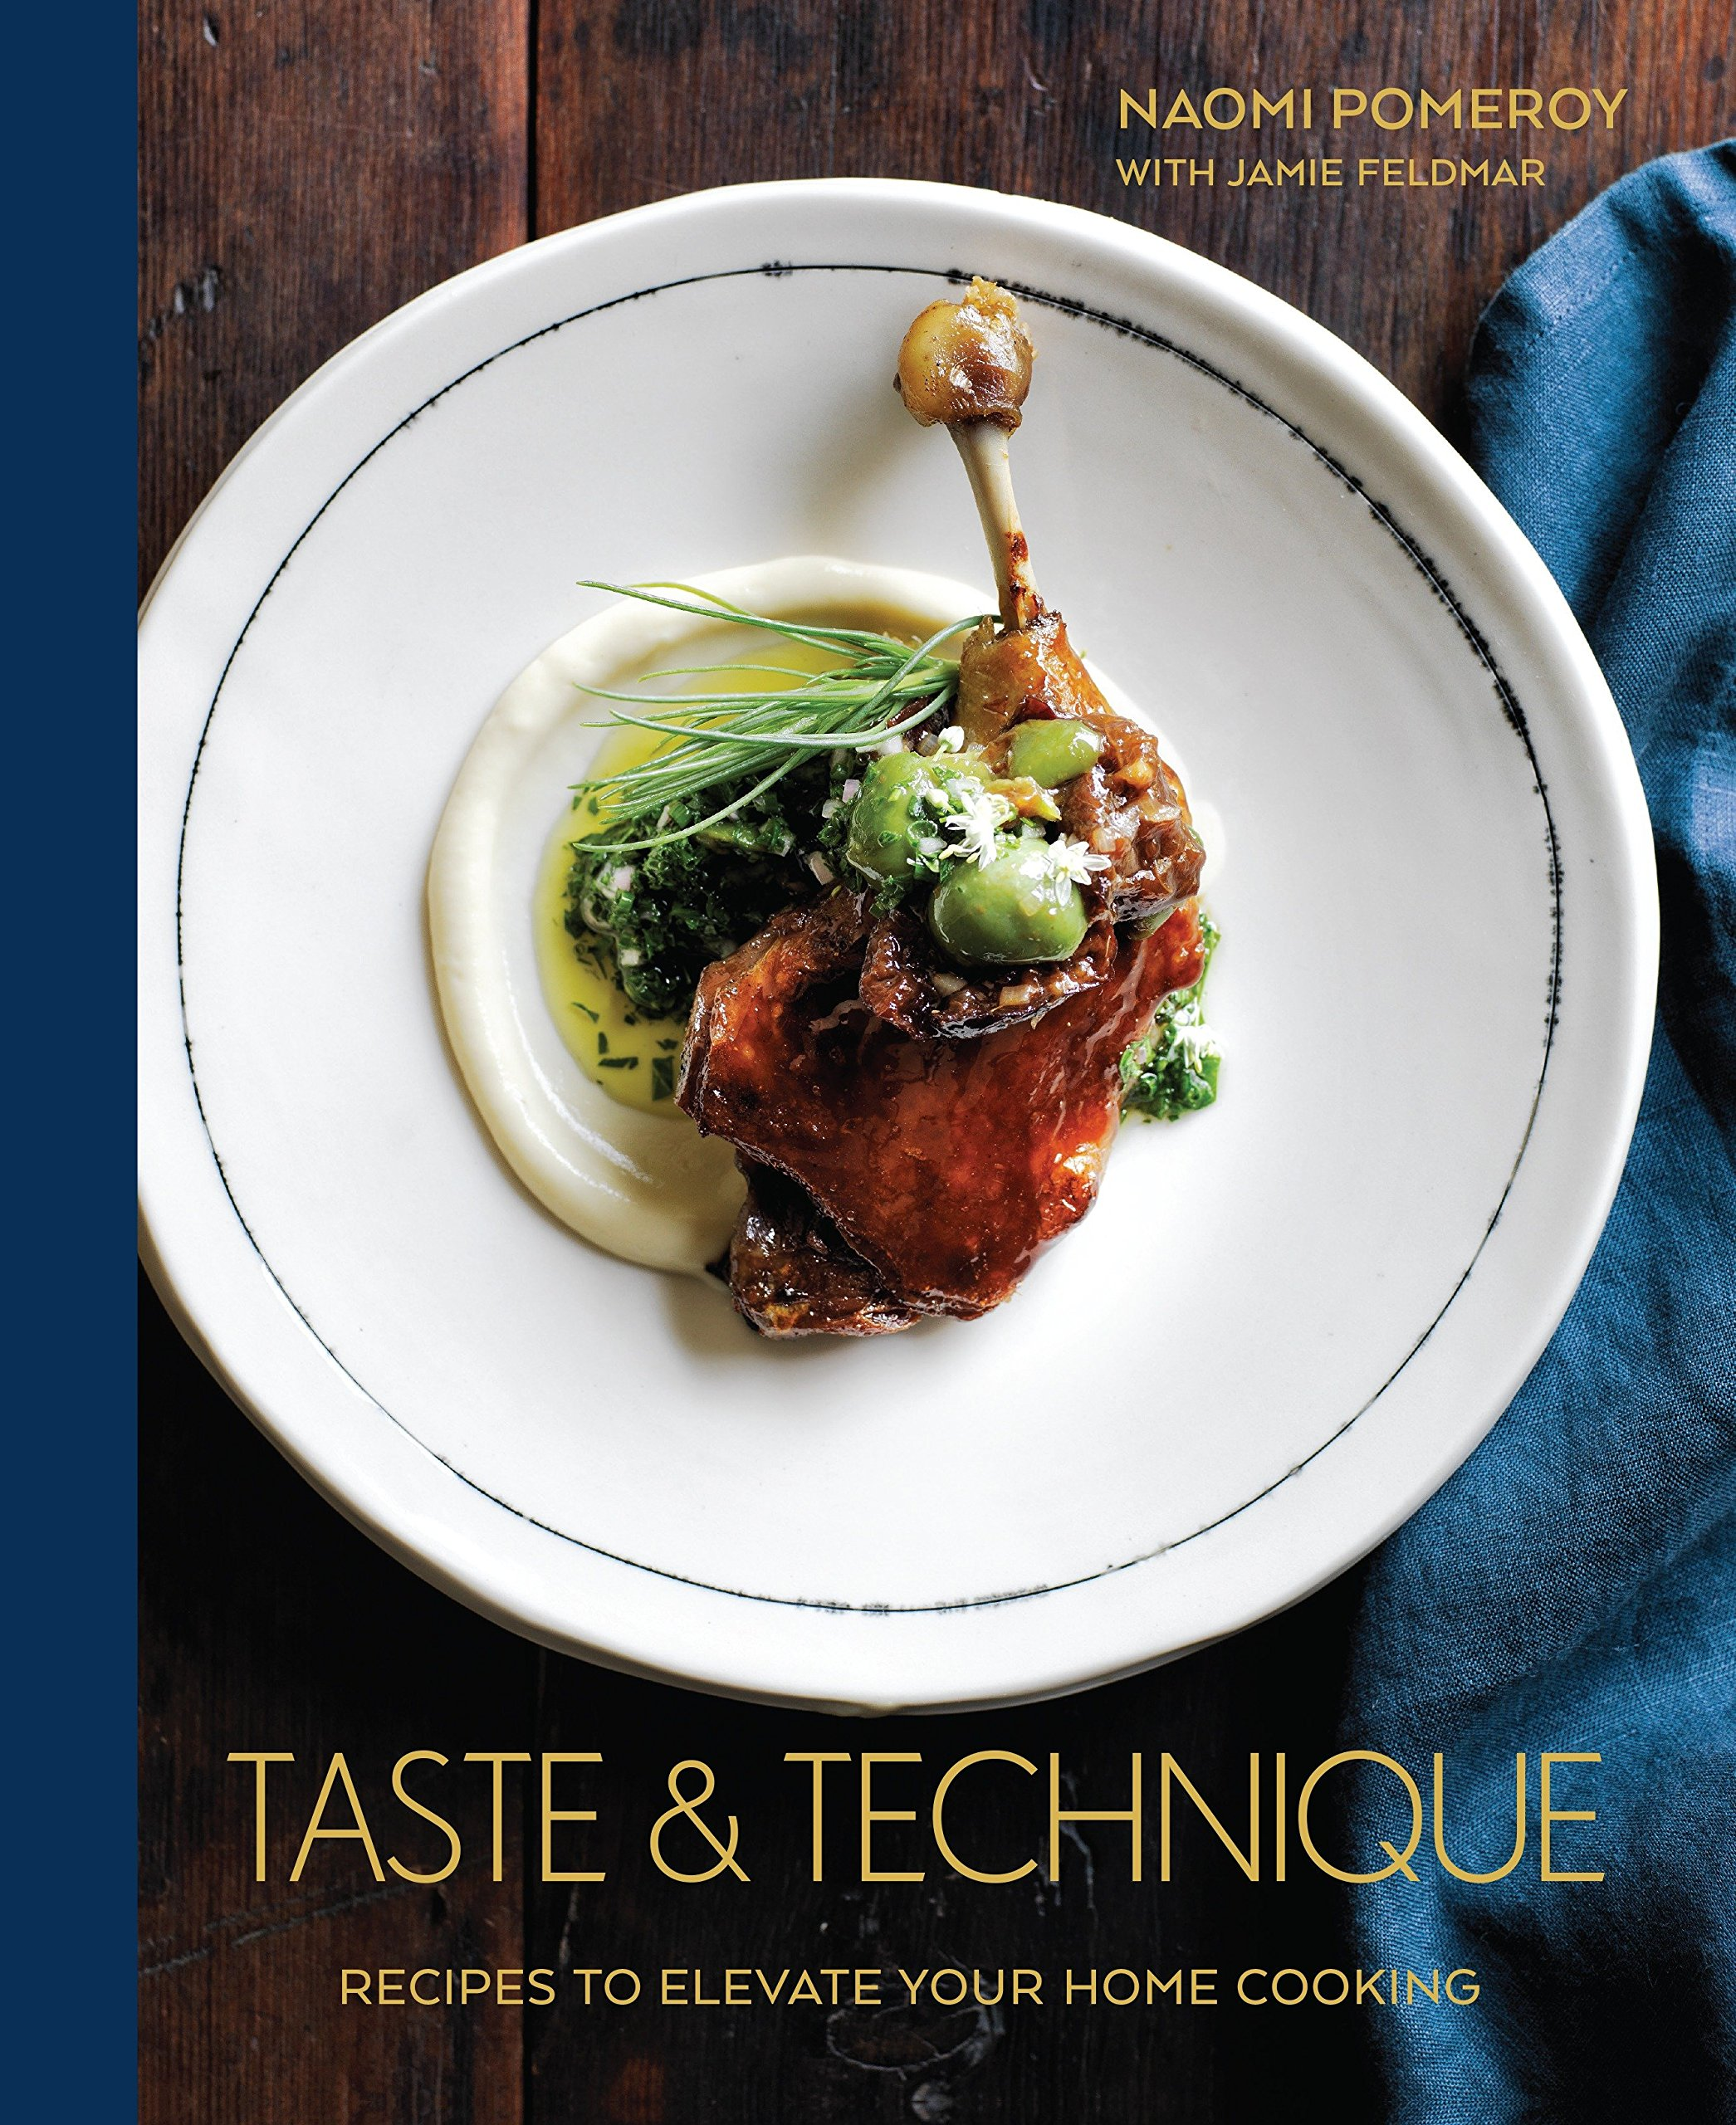 Download Taste & Technique: Recipes to Elevate Your Home Cooking PDF